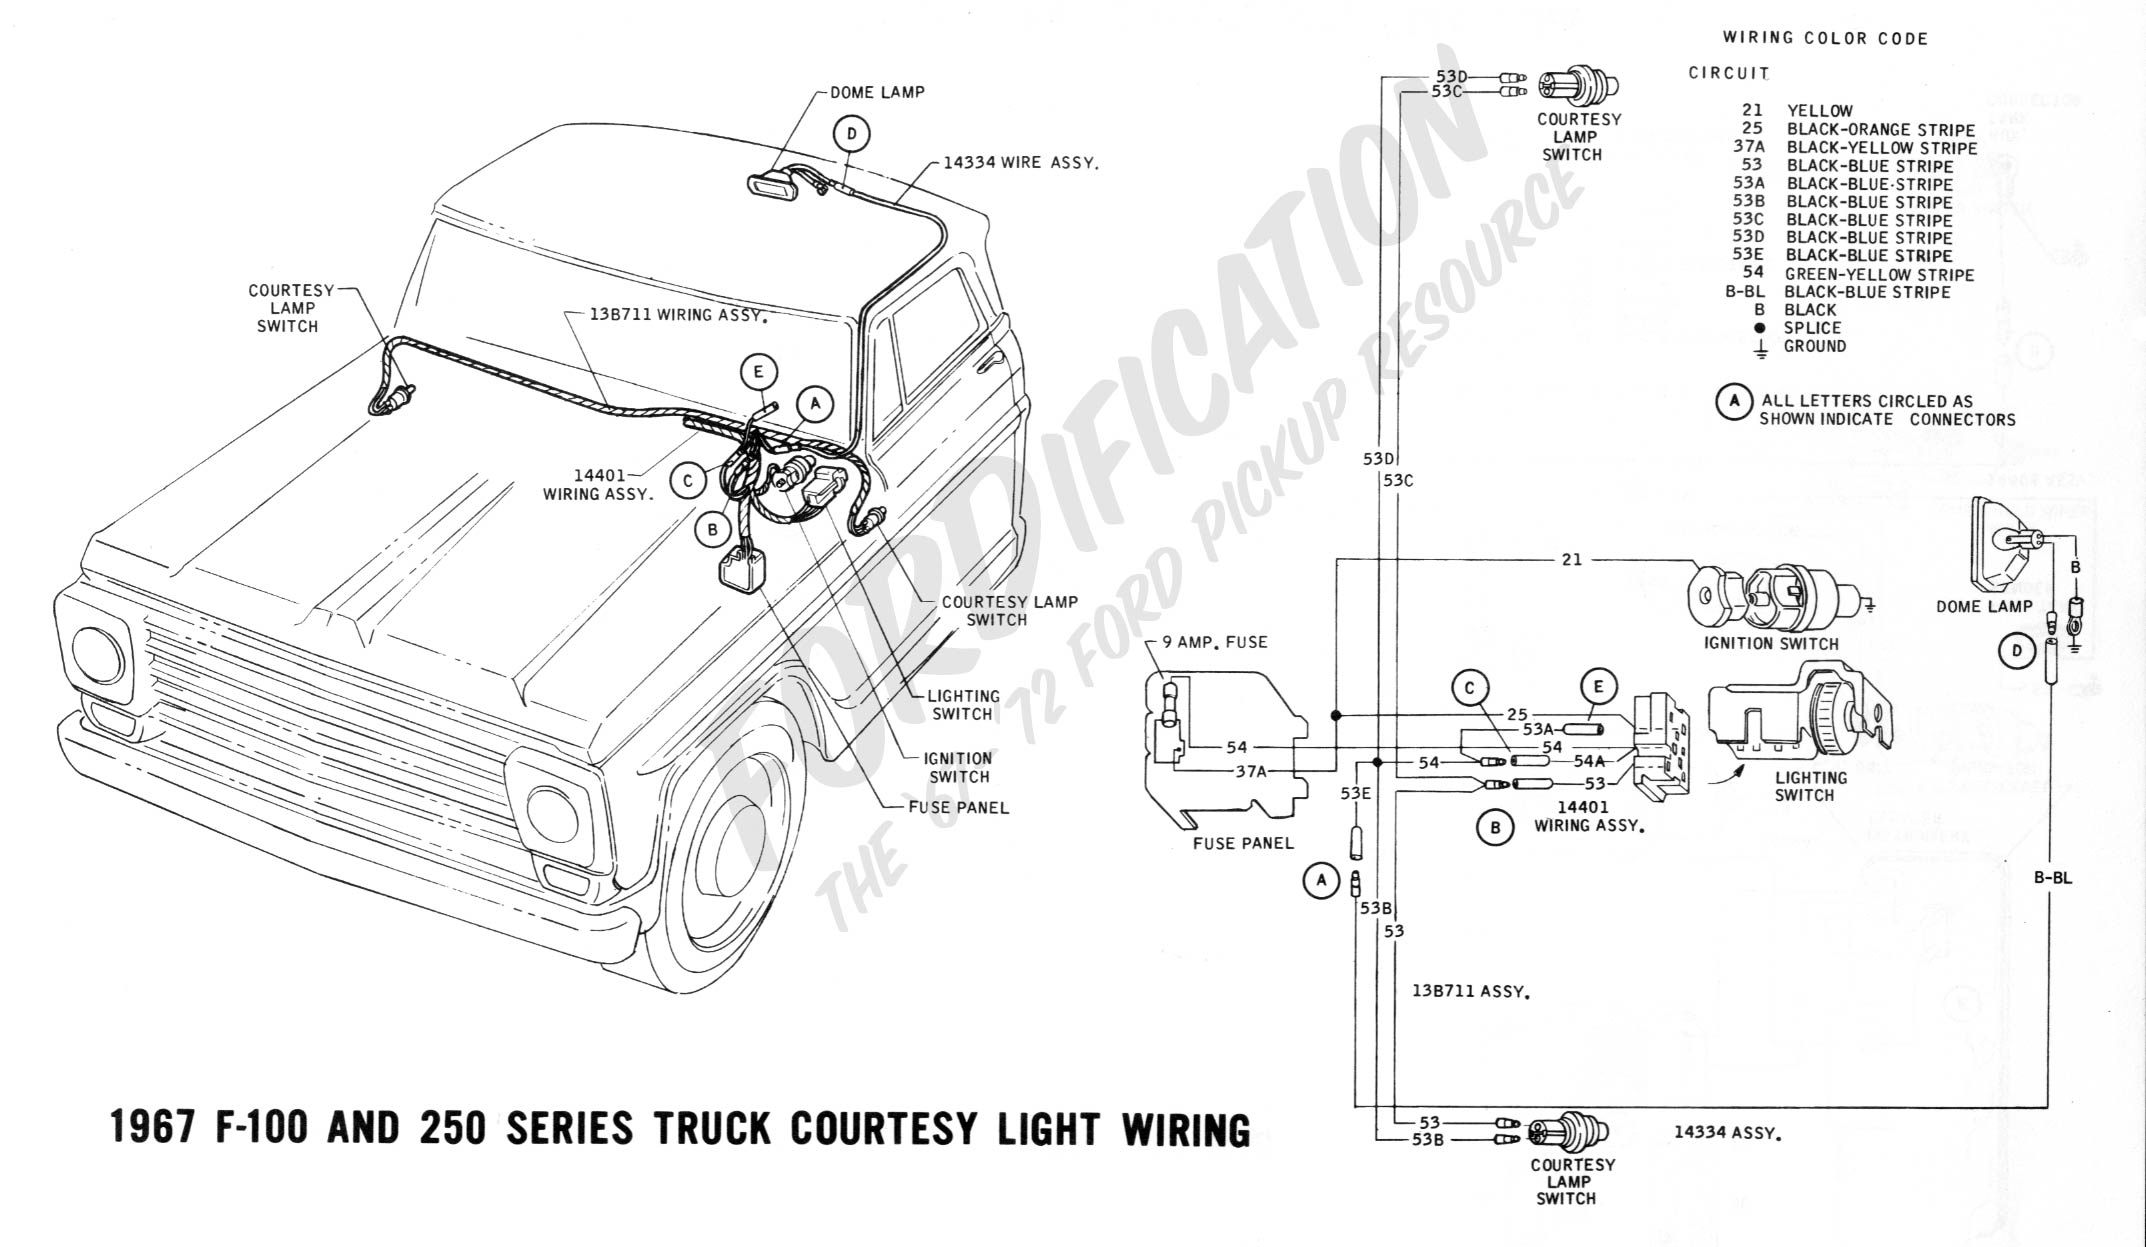 wiring 1967courtesylight ford truck technical drawings and schematics section h wiring ford truck wiring schematics at alyssarenee.co